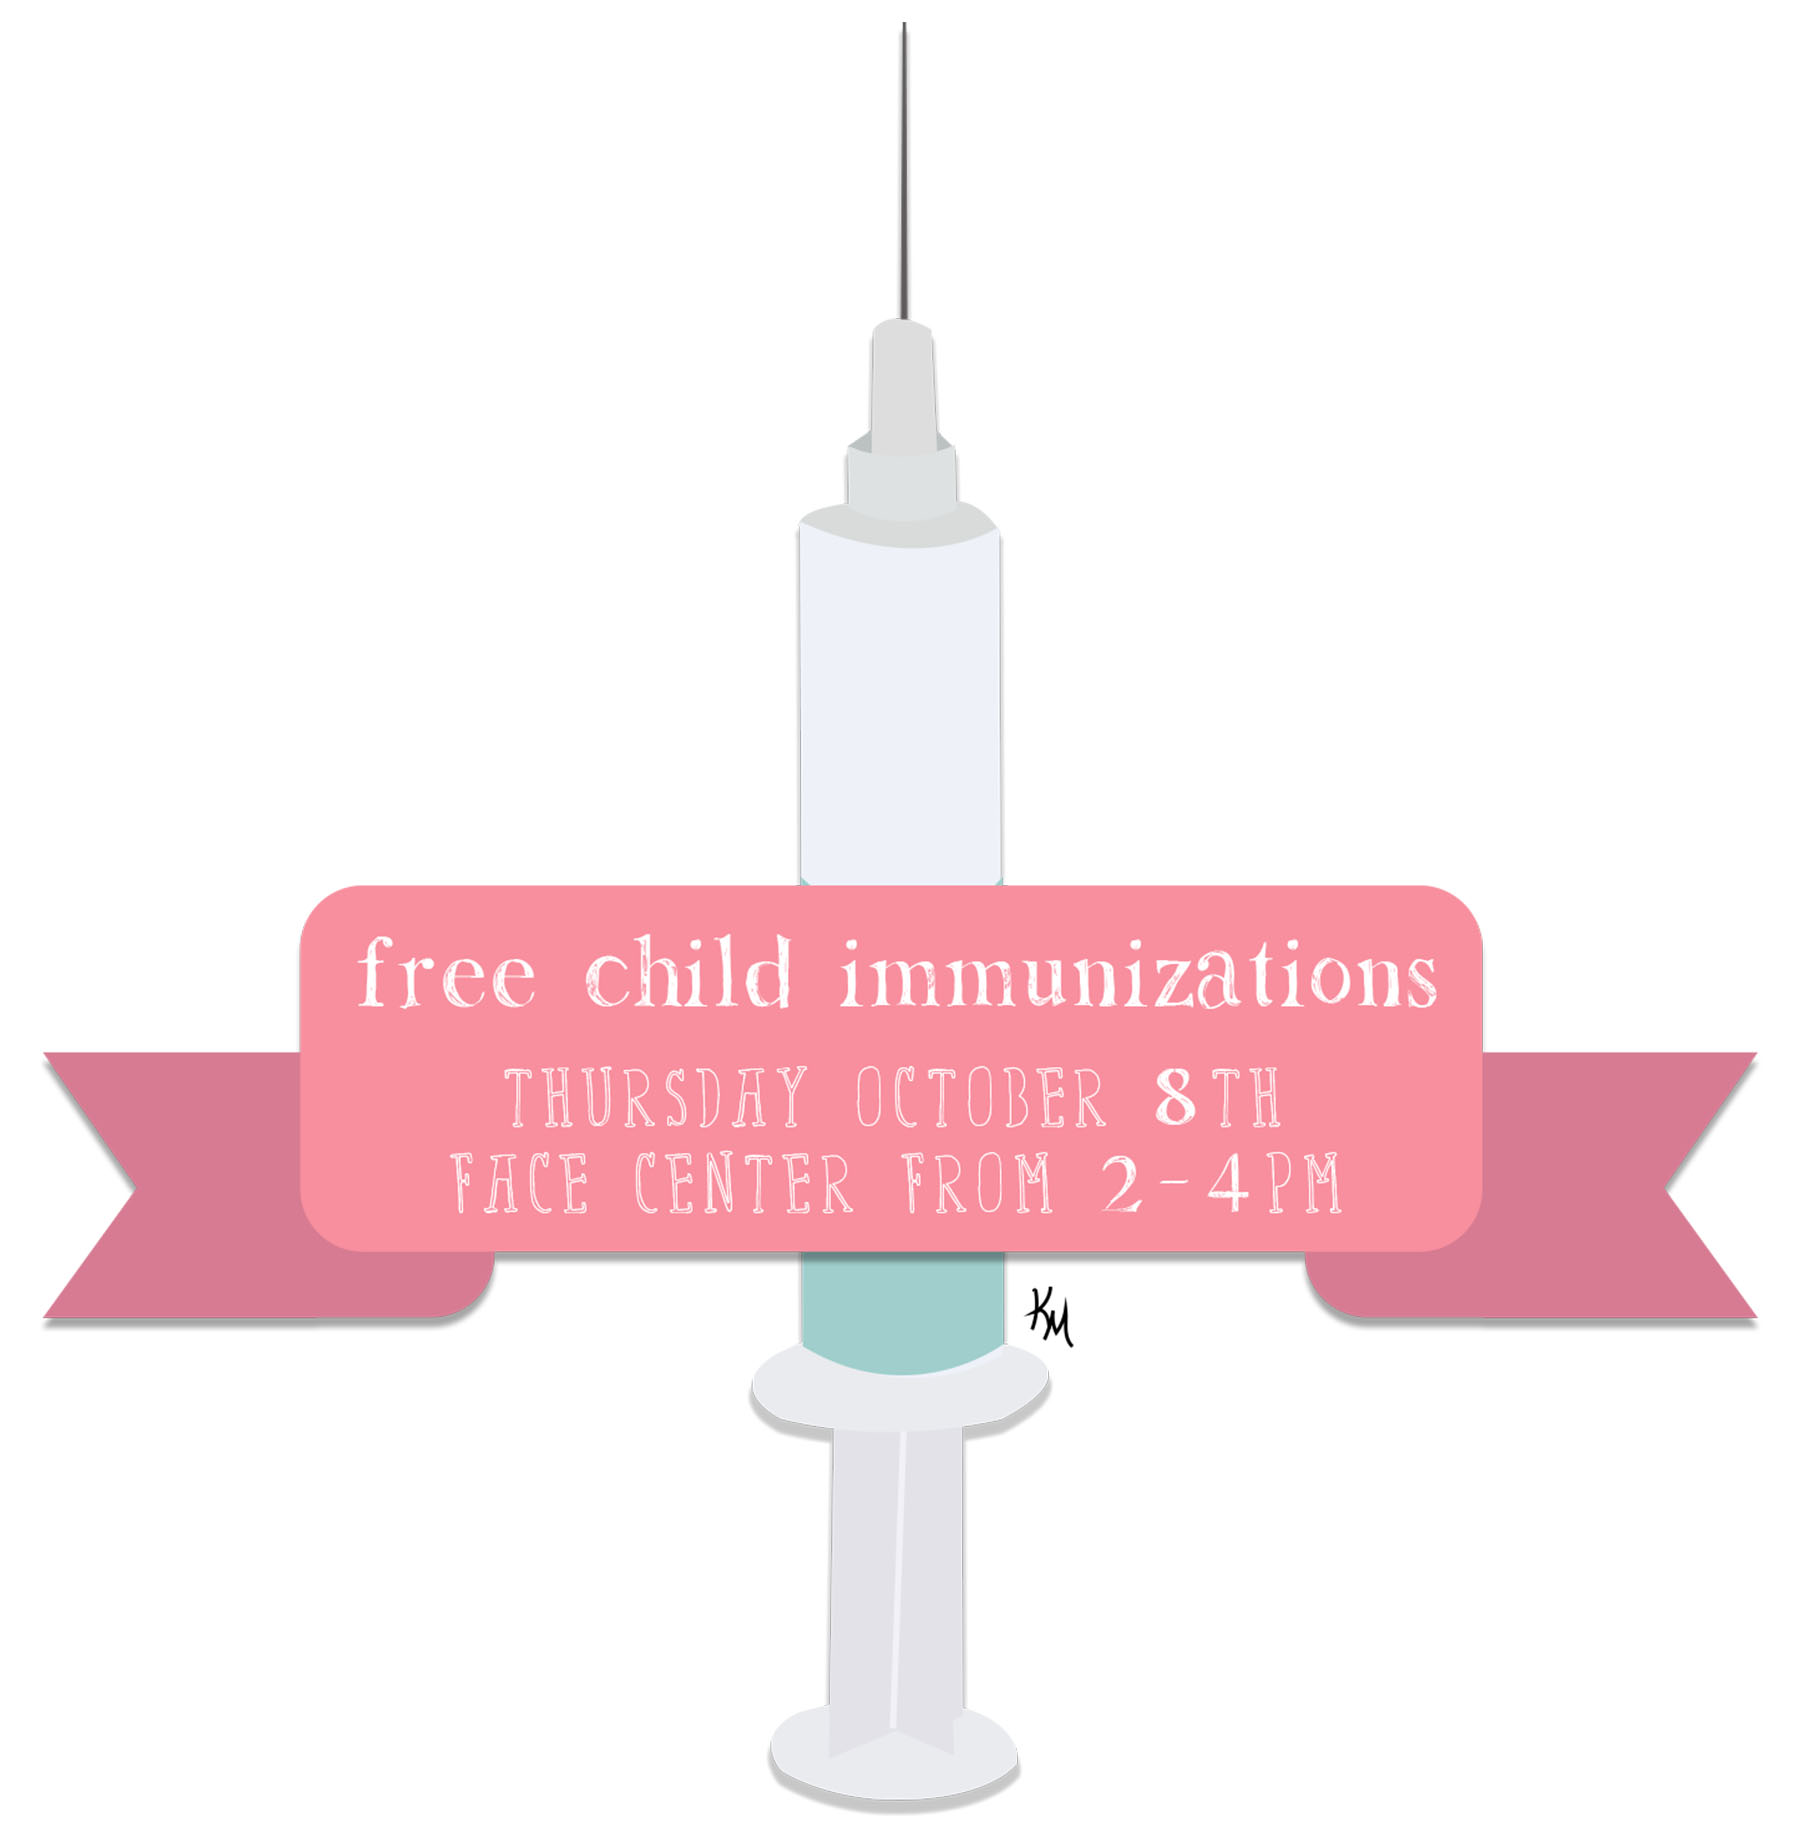 Caring Van offers free vaccinations